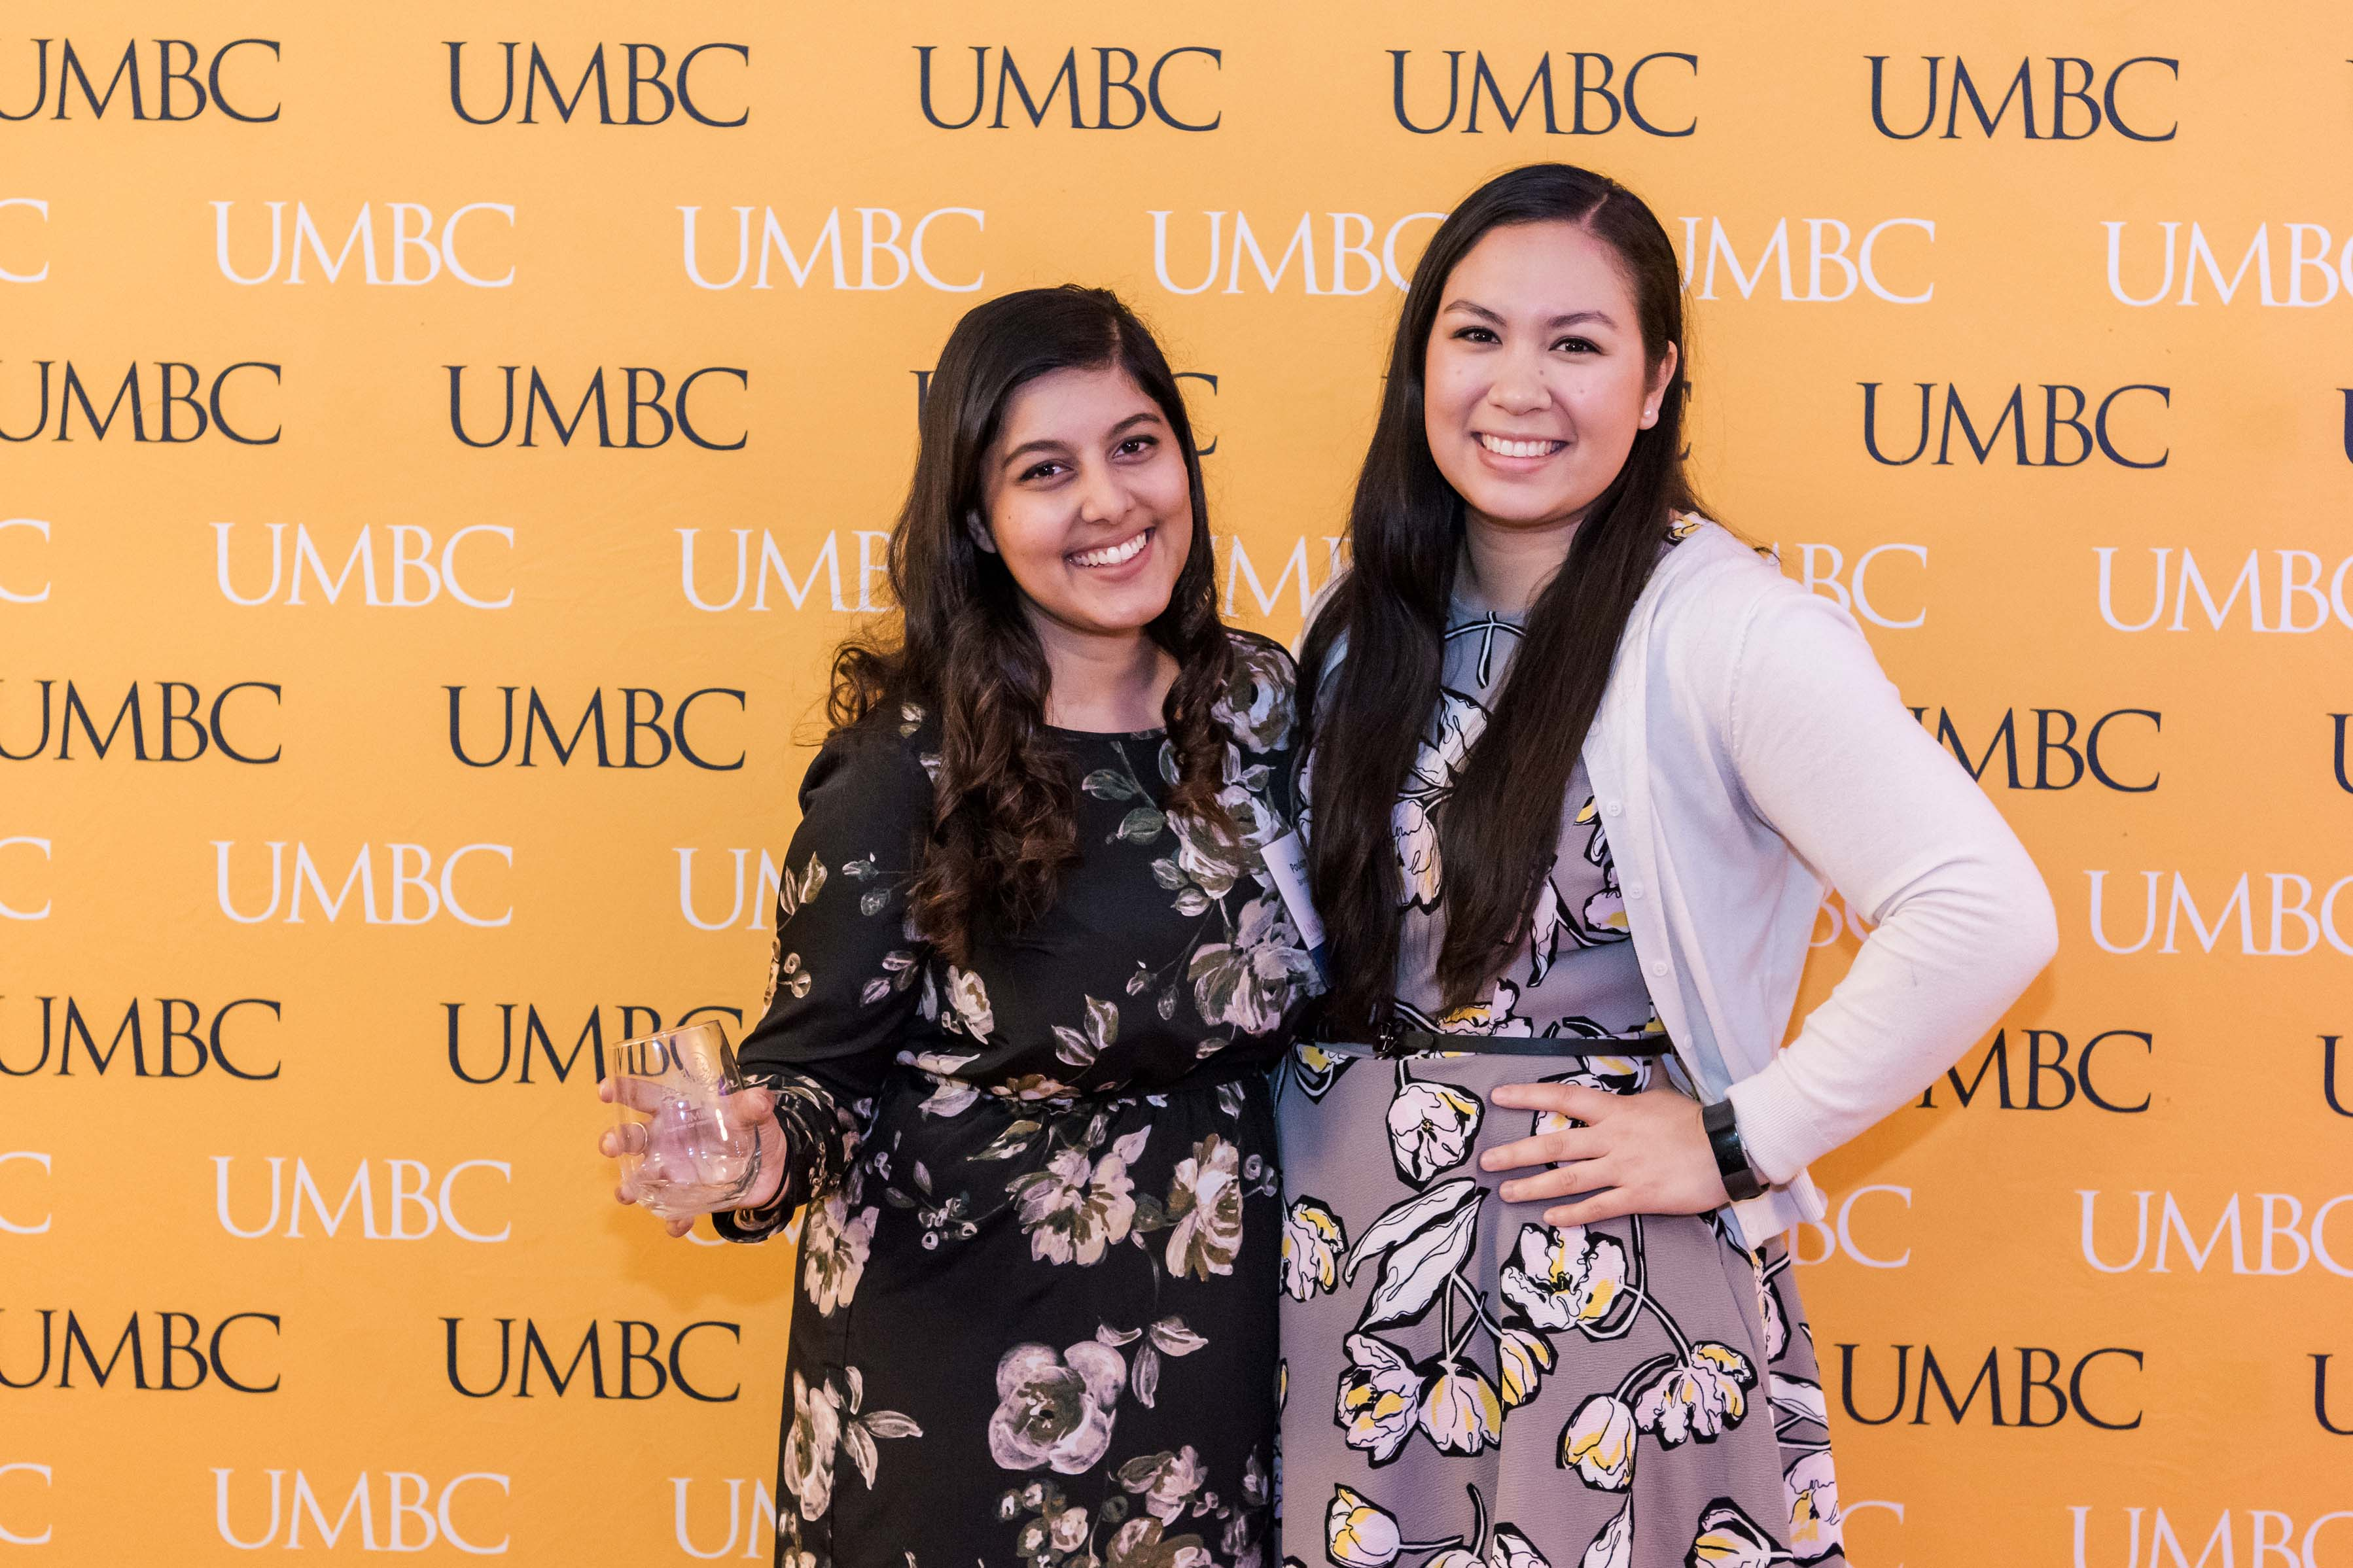 Poulomi poses with woman wine glass in hand at UMBC wall at CYA event